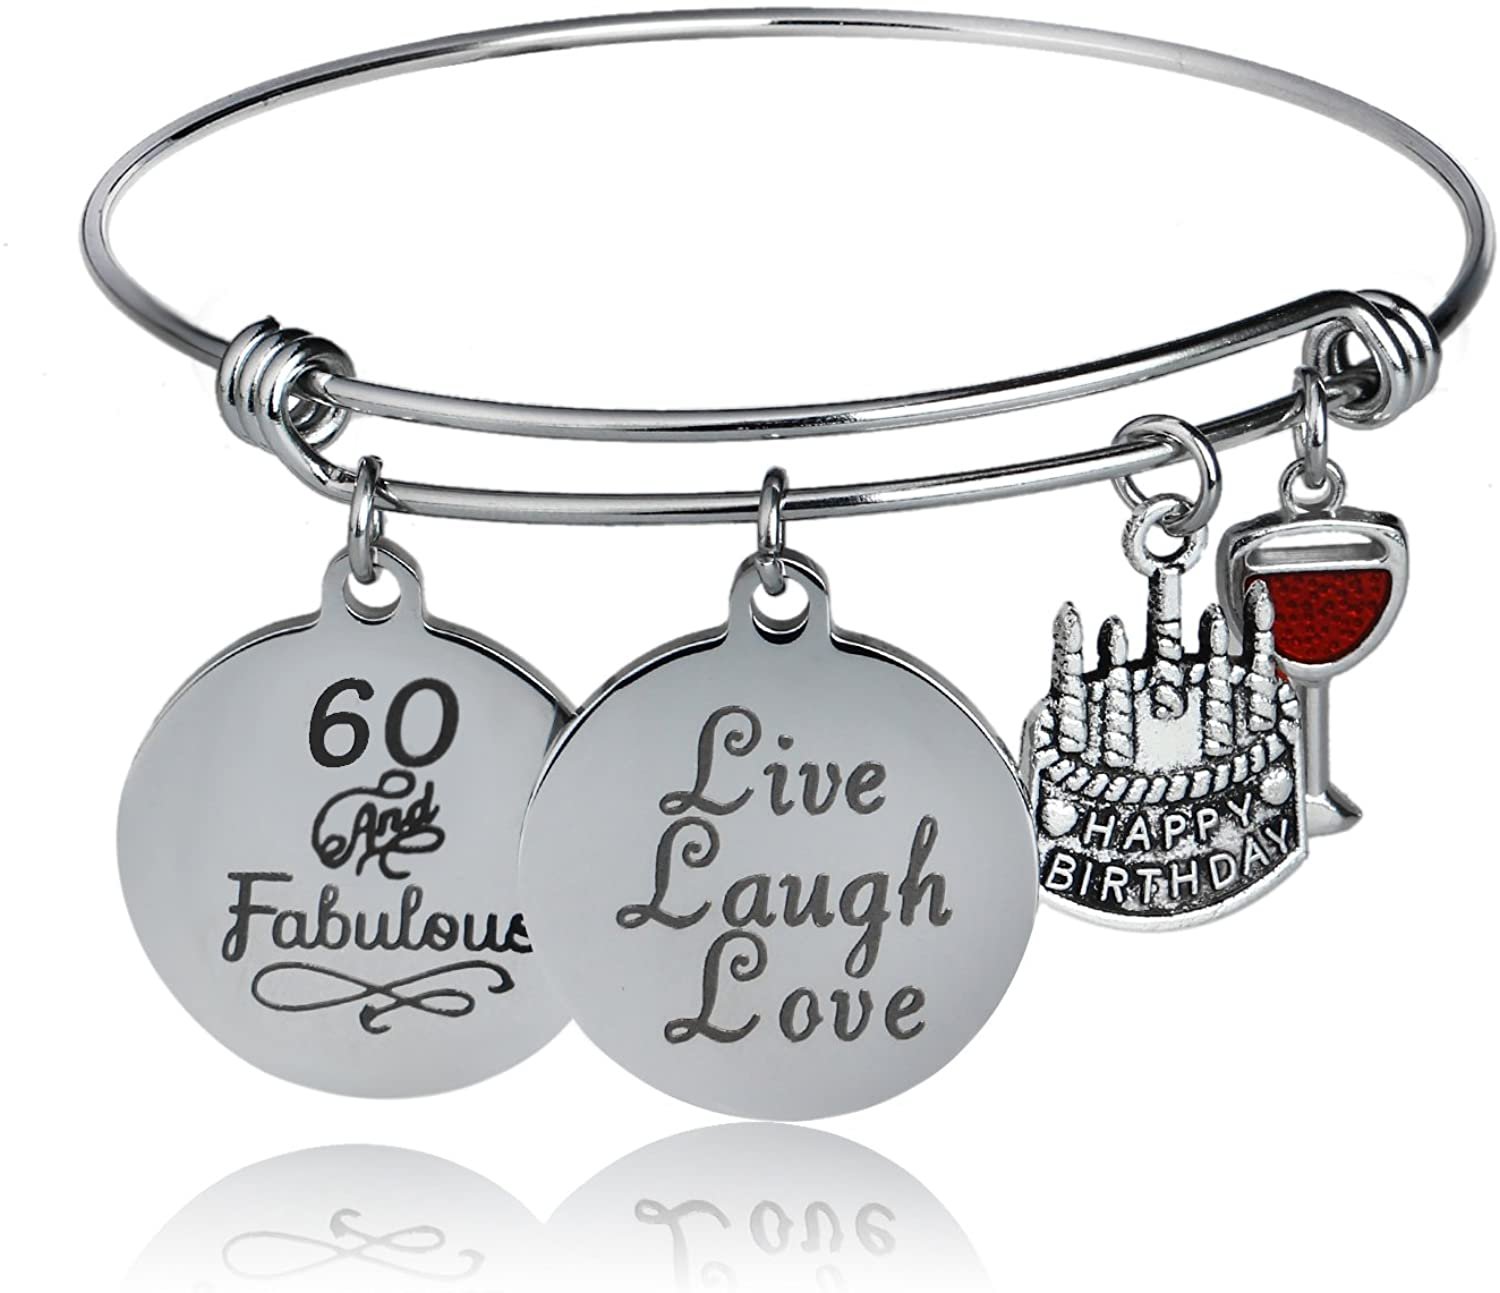 Happy Birthday Bangles, Cake Cheer Live Laugh Love Charms Bangle Bracelets, Gifts For Her